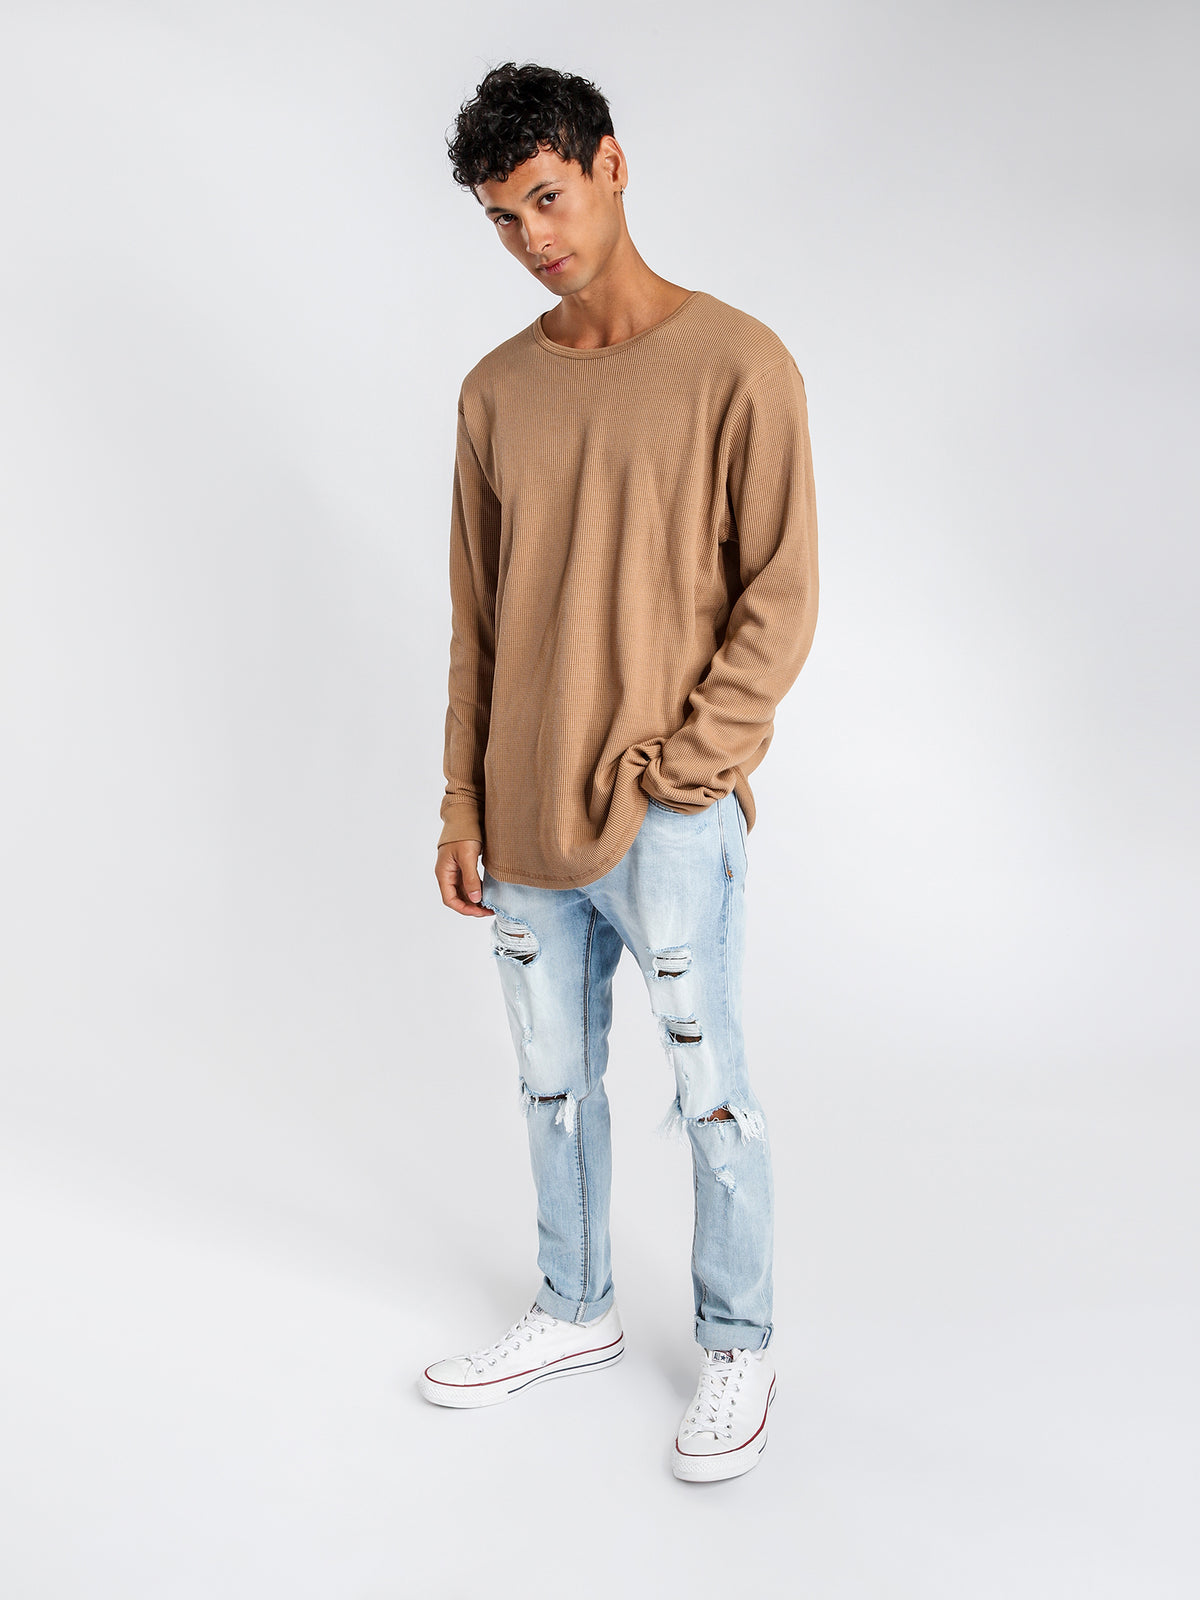 Waffle Long Sleeve Crew Top in Camel